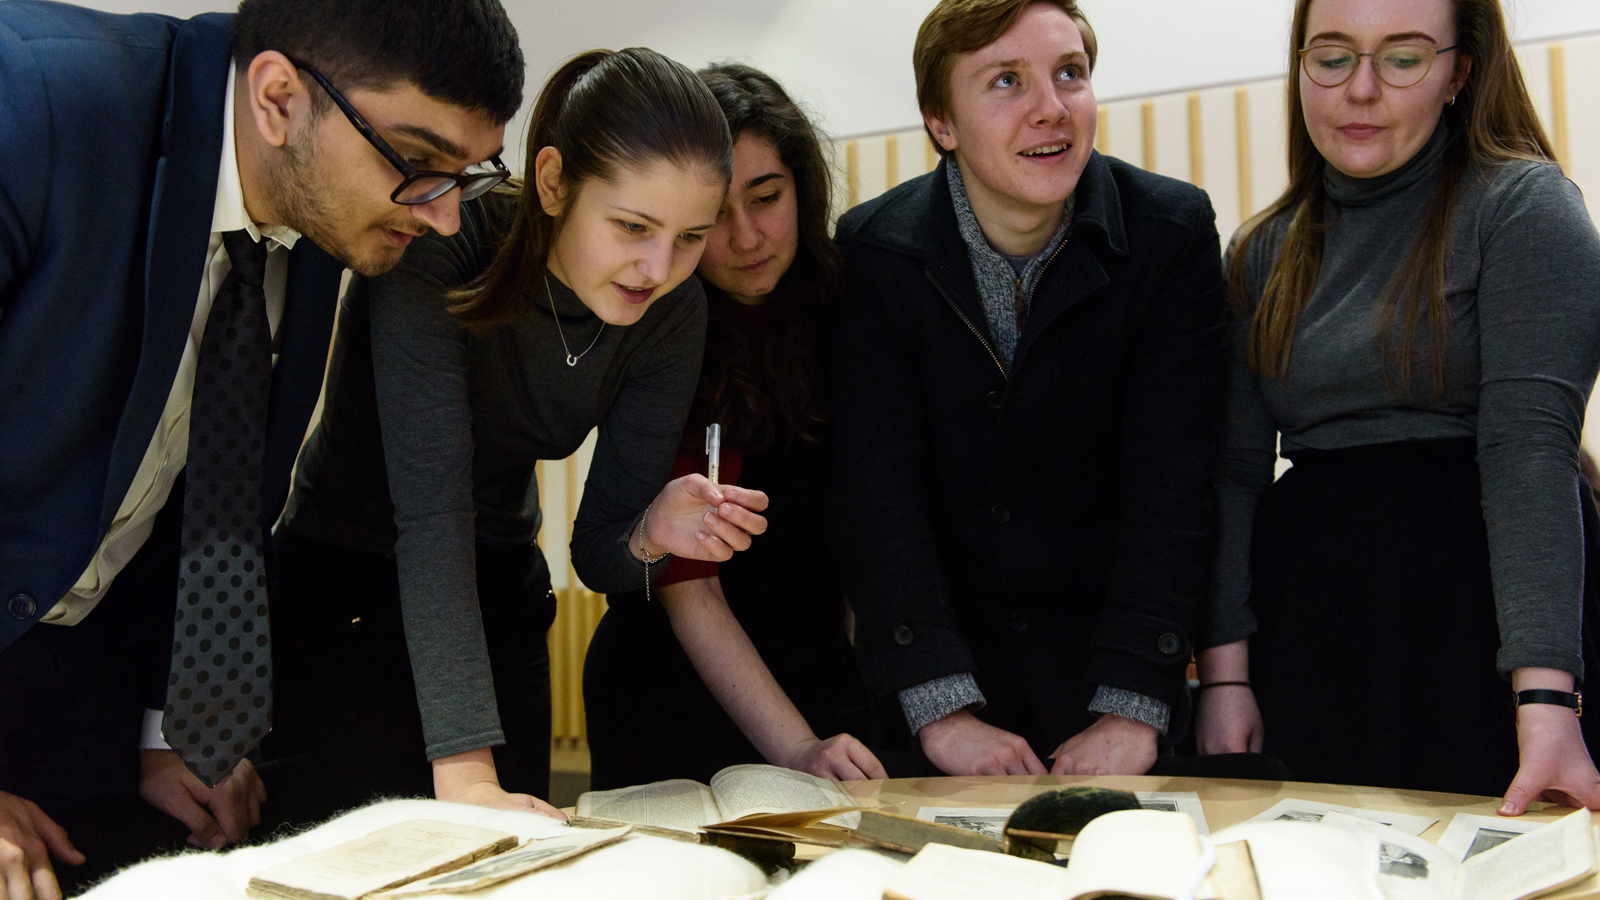 Photograph of group of students studying collection item material on table